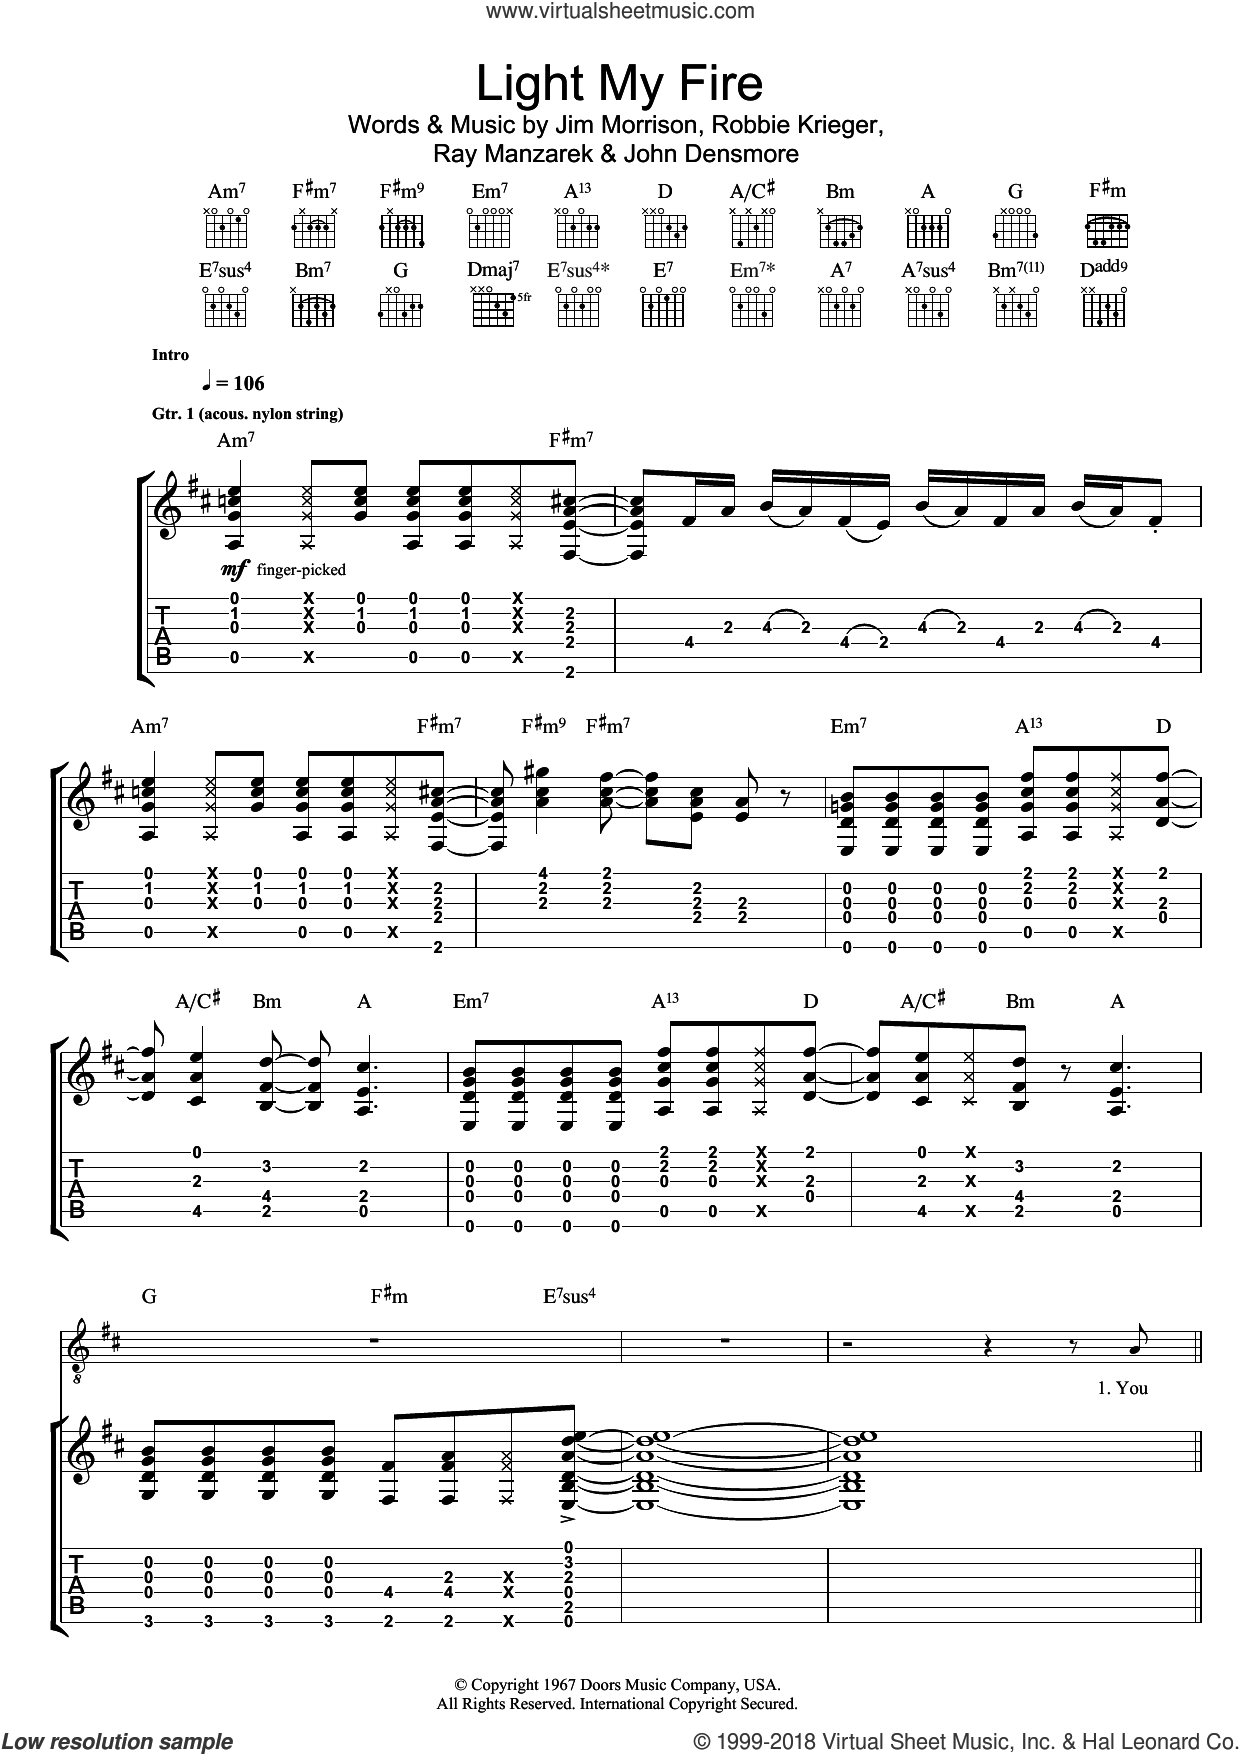 Light My Fire sheet music for guitar (tablature) by Jim Morrison